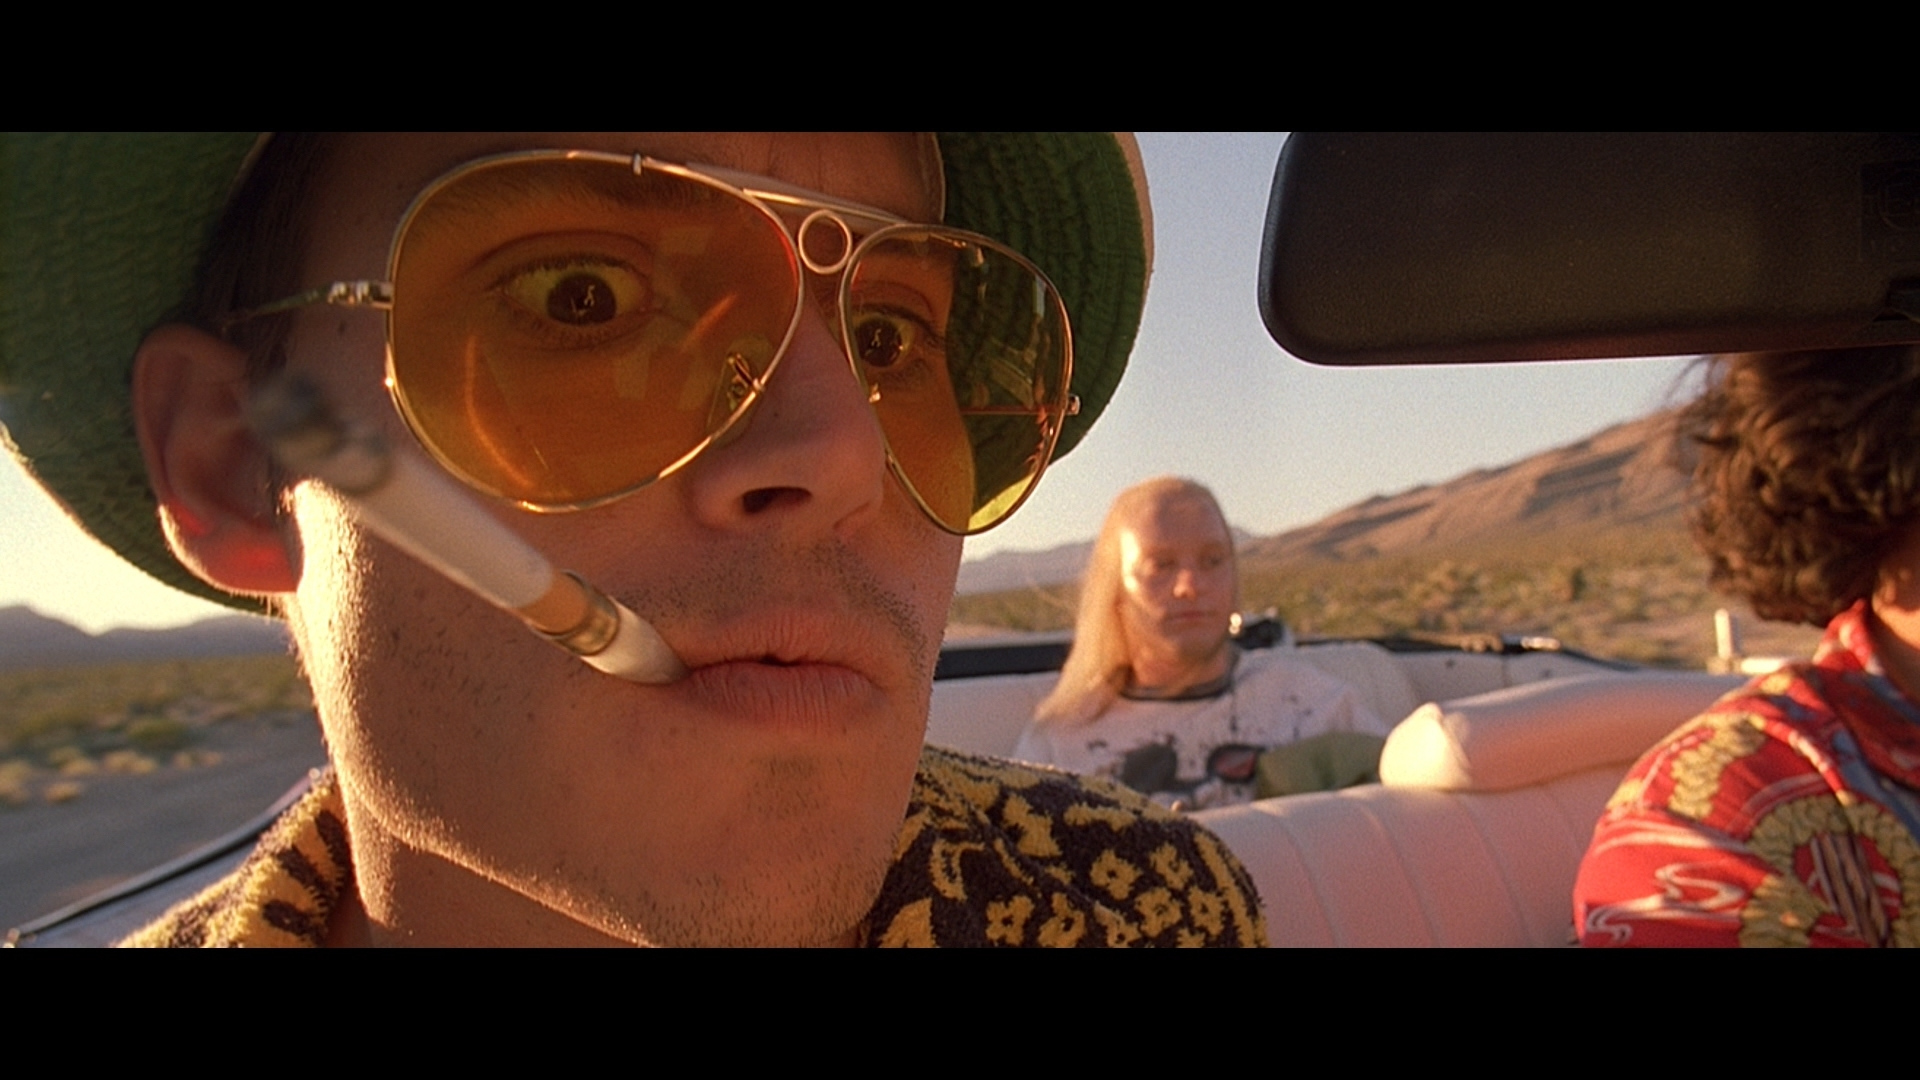 Fear And Loathing Backgrounds on Wallpapers Vista